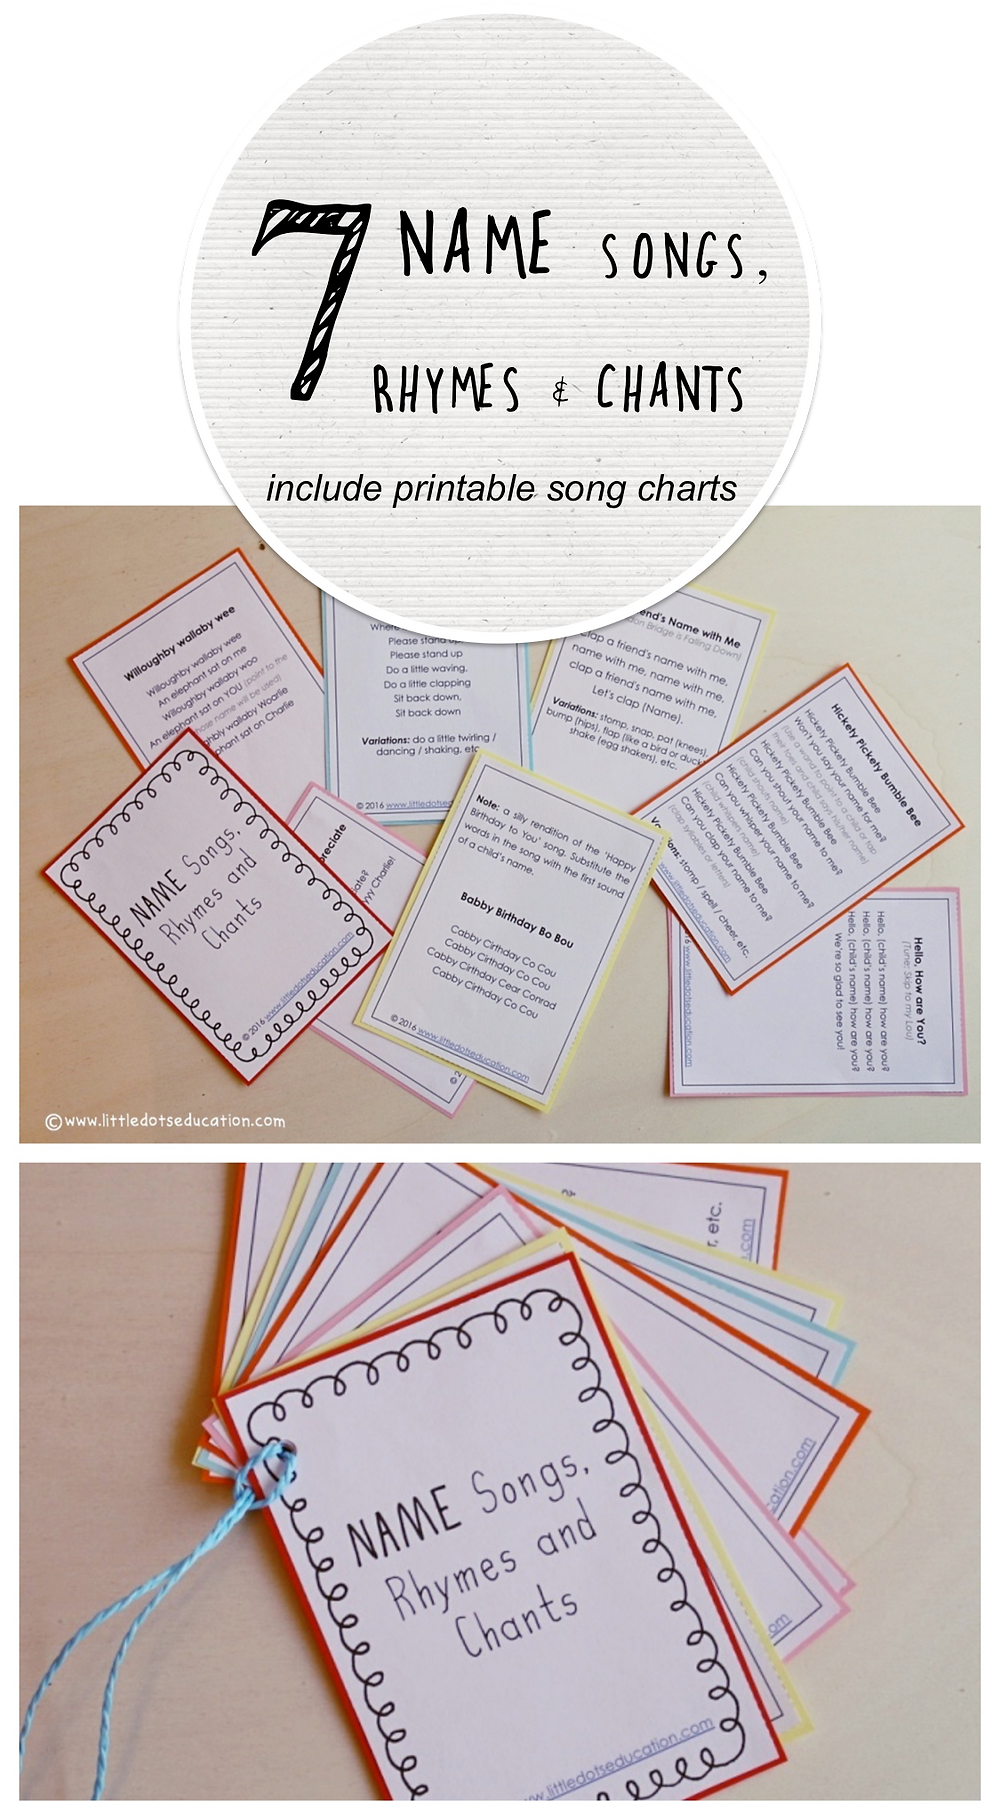 7 name songs, rhymes and chants great for circle time or to break the ice at a new class. Includes printable for teachers to print for future reference.